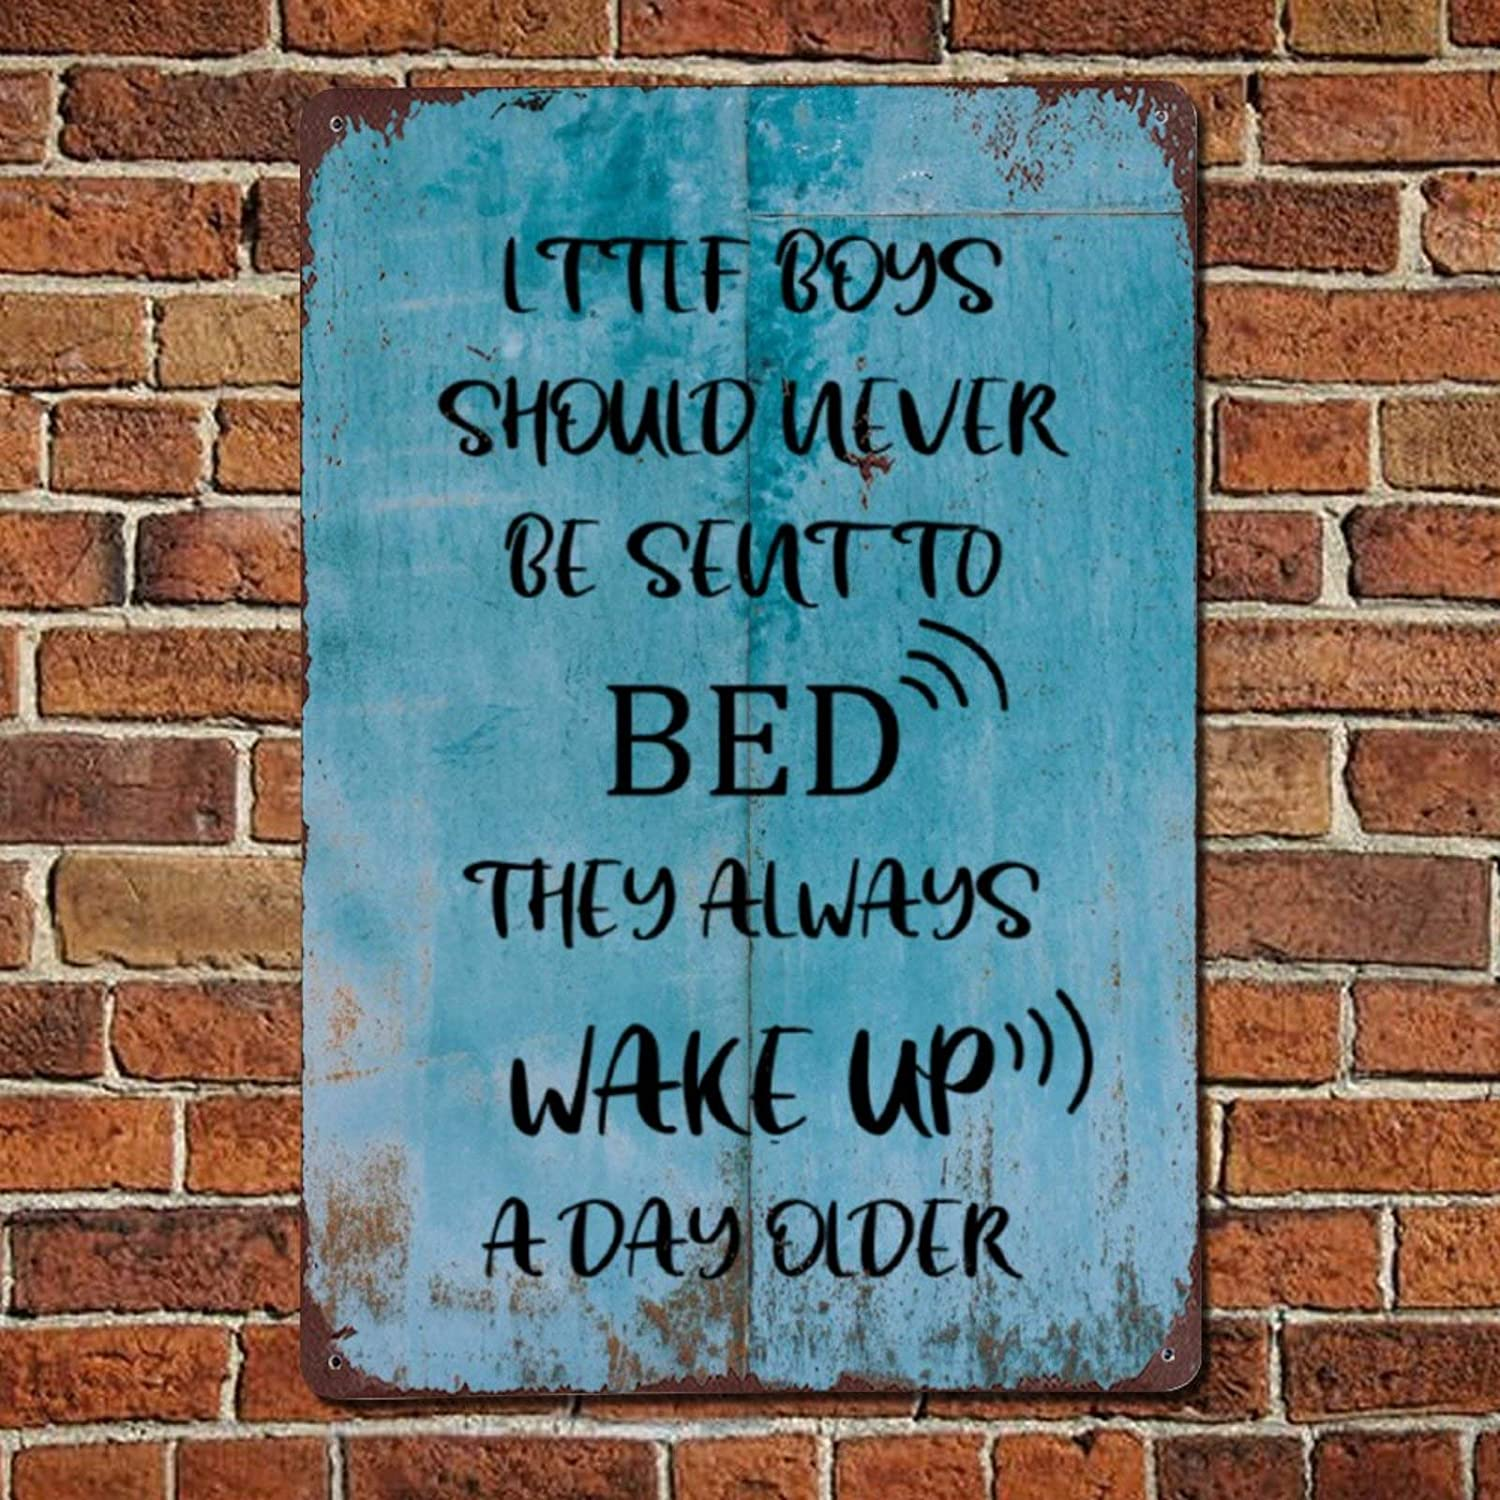 Little Boys Should Never Be Sent to Bed They Always Wake Up Vintage Quote Metal sign,Retro Saying words Sign,Rustic Inspirational quotes Bar Men Cave Garden Wall art,Farmhouse Aluminum Sign,home deco